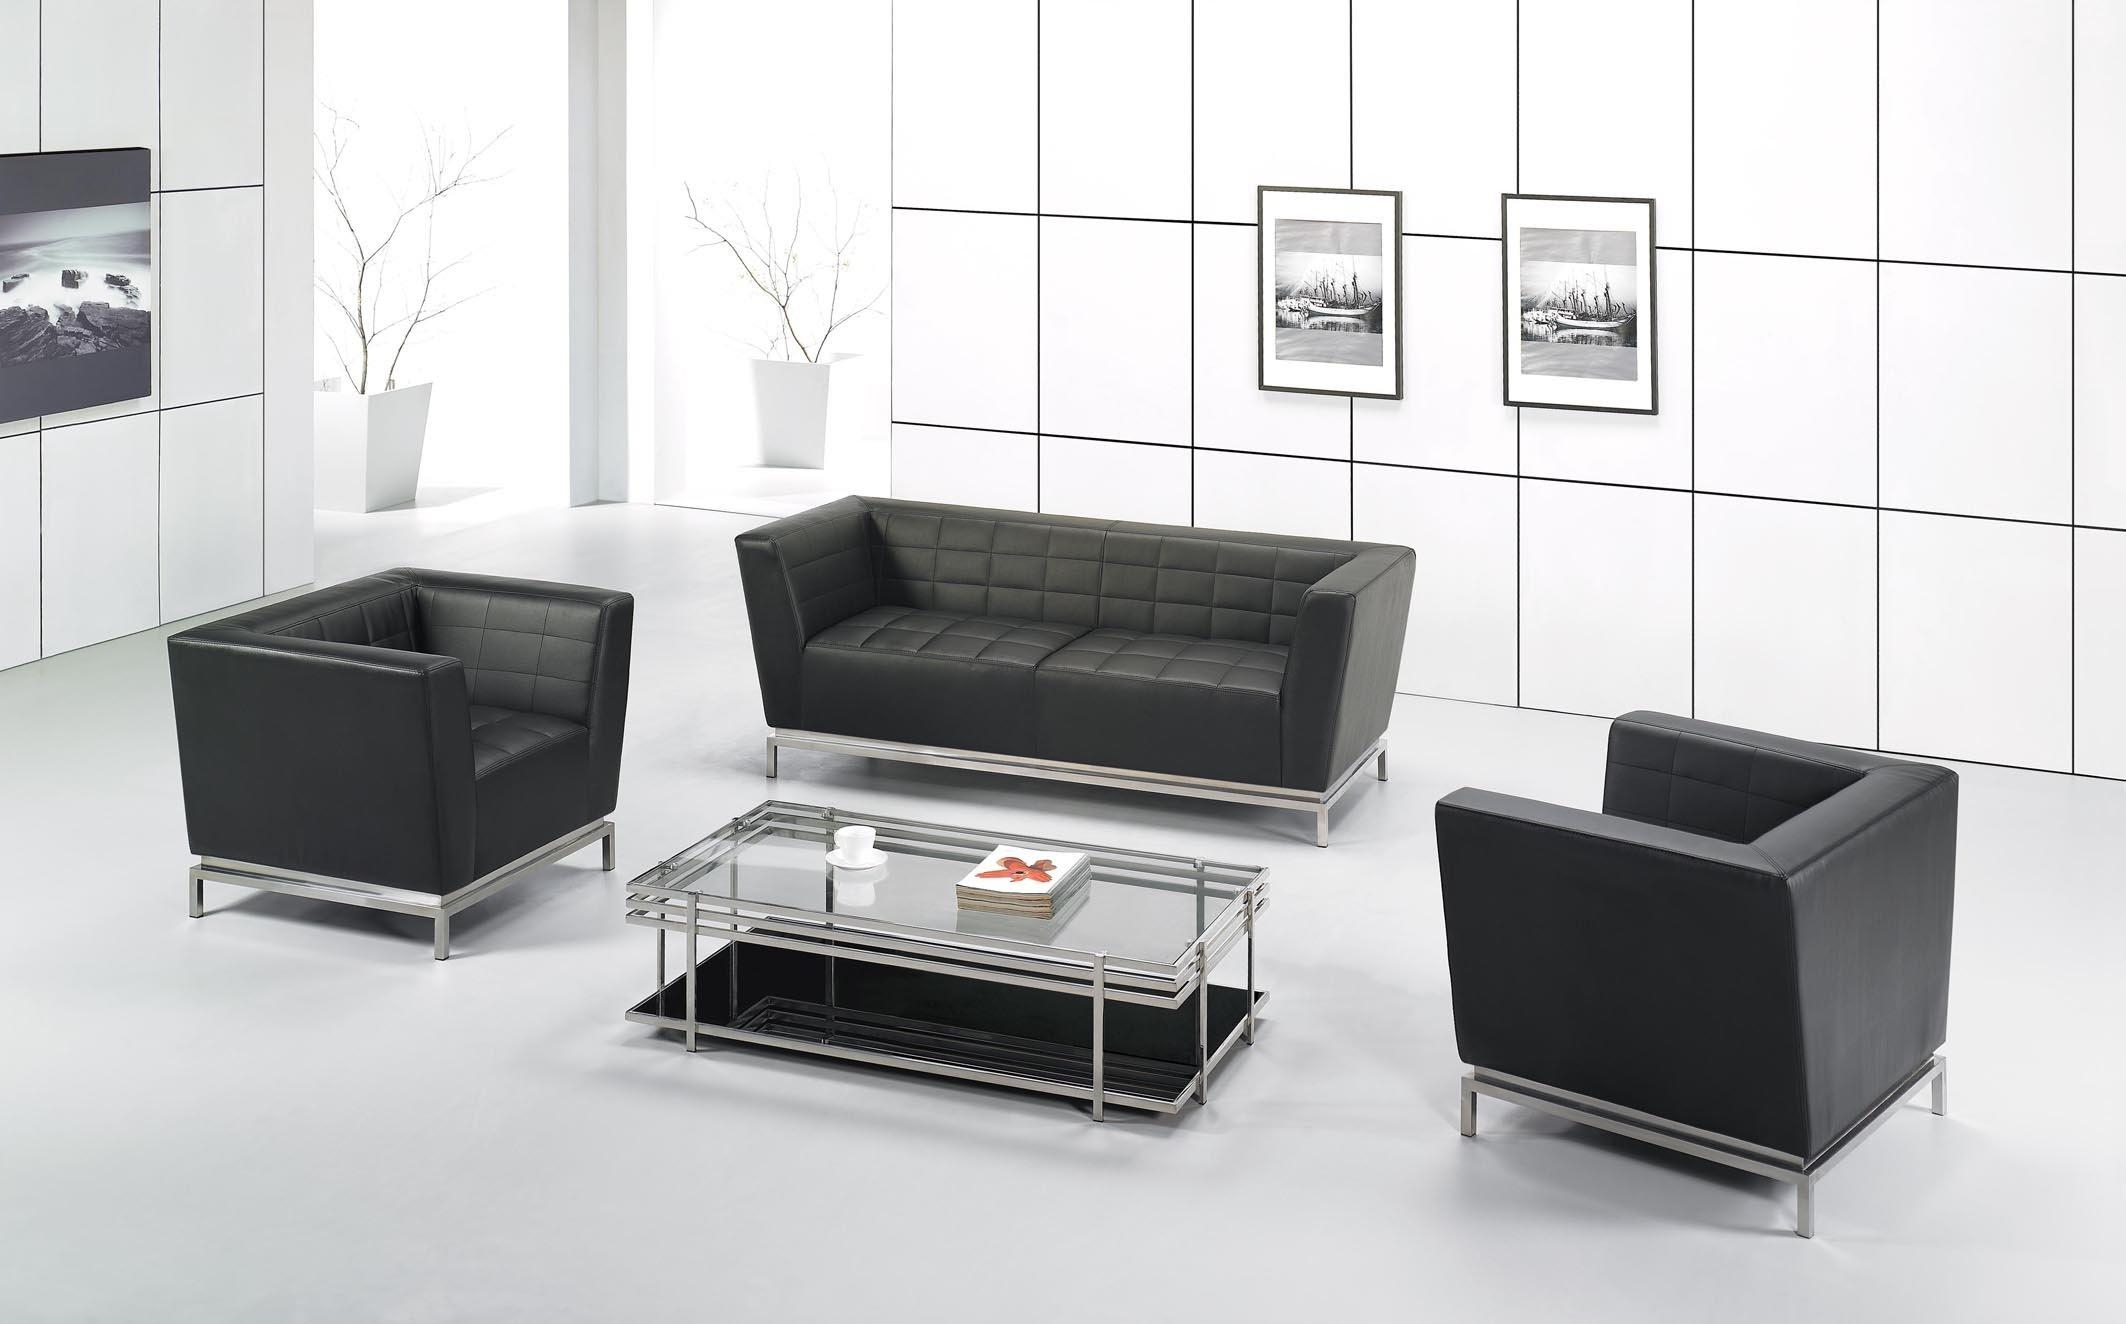 Office Reception Chairs Leather Black Leather Office Guest Chair Pertaining To Office Sofas And Chairs (View 11 of 20)